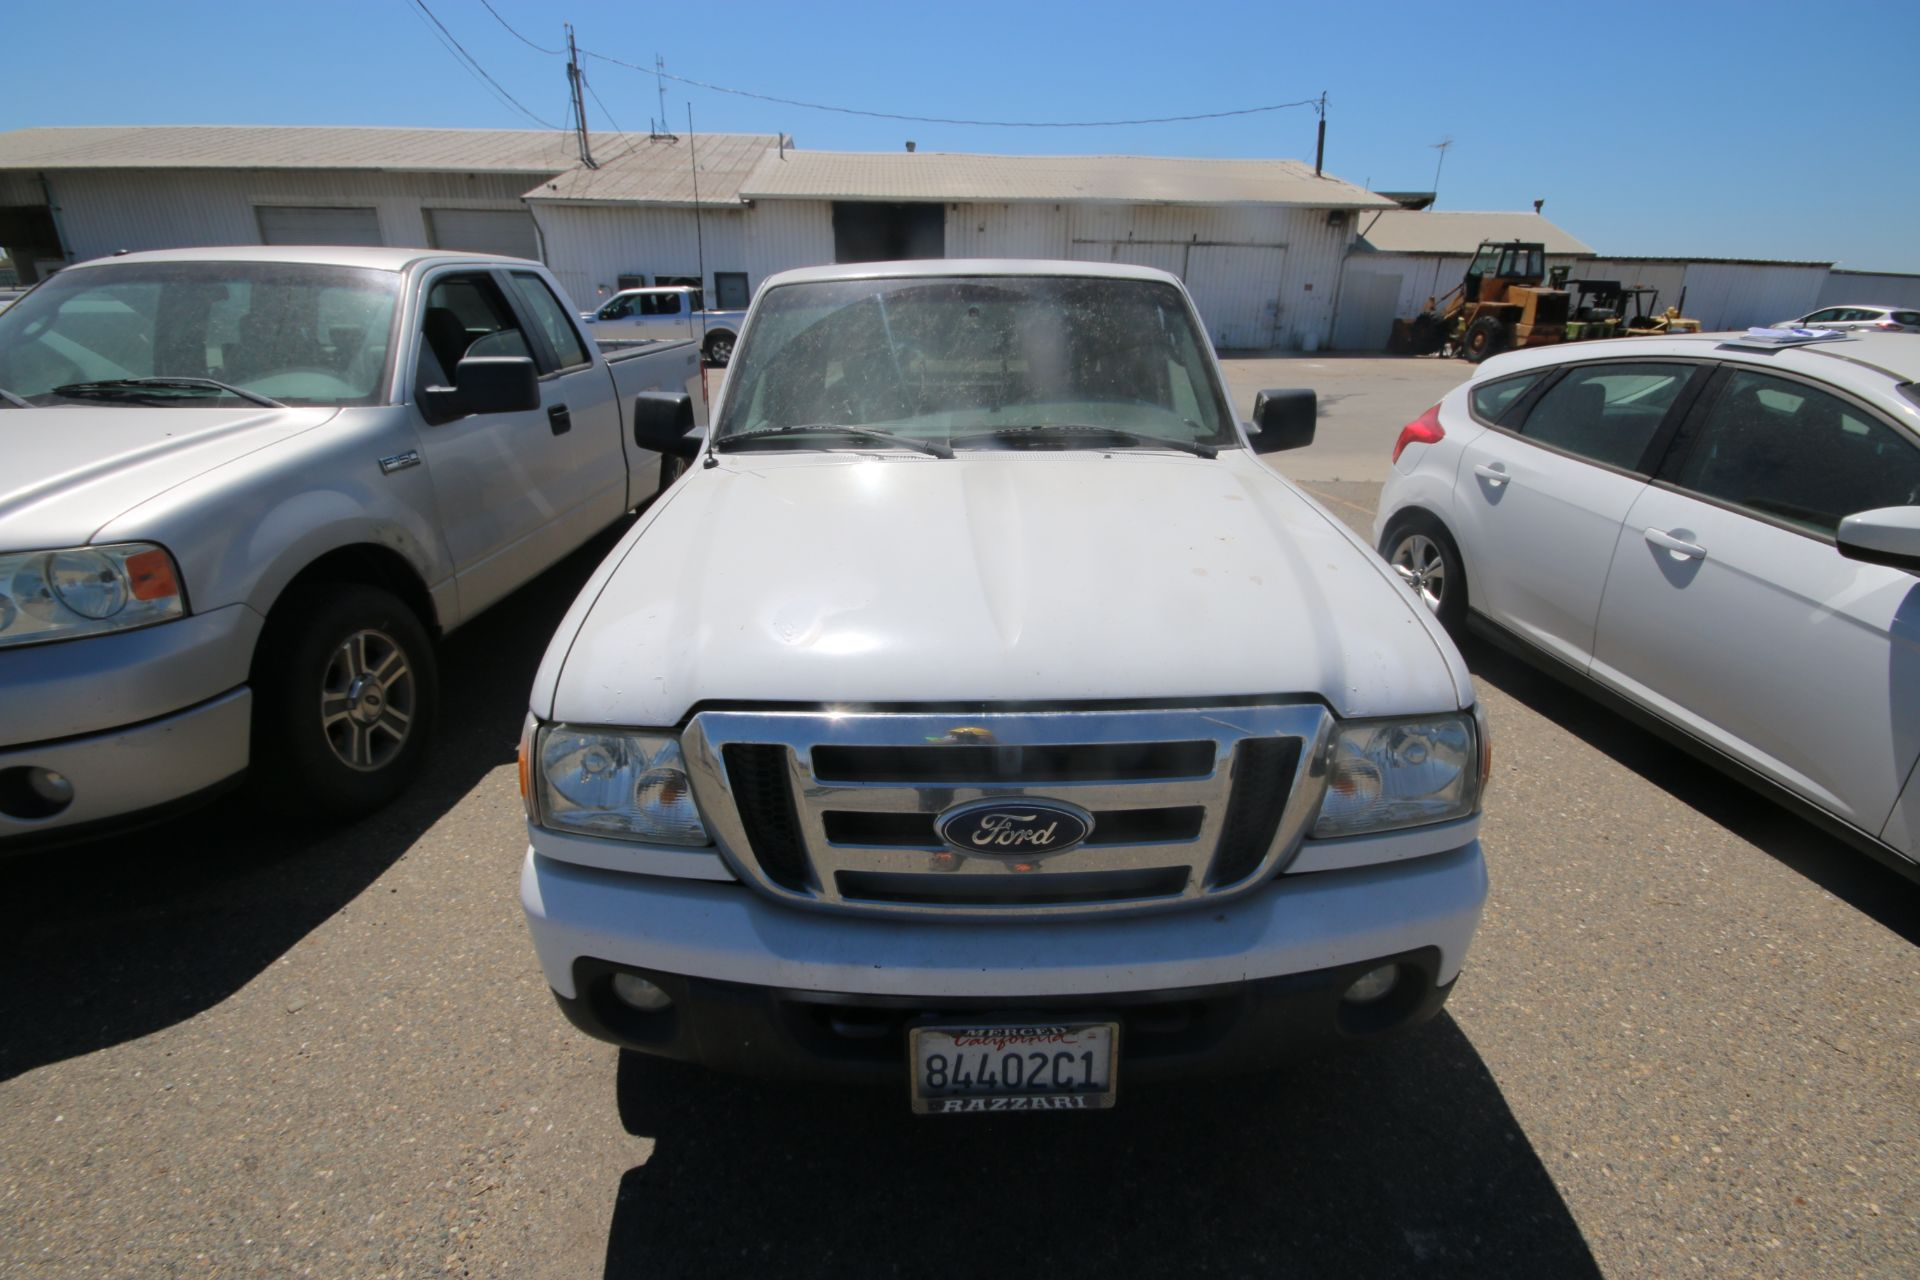 2011 White Ford Ranger Pick Up Truck, VIN #: 1FTLR4FE8BPA37482, with 160,443 Miles, Started Up as of - Image 24 of 24